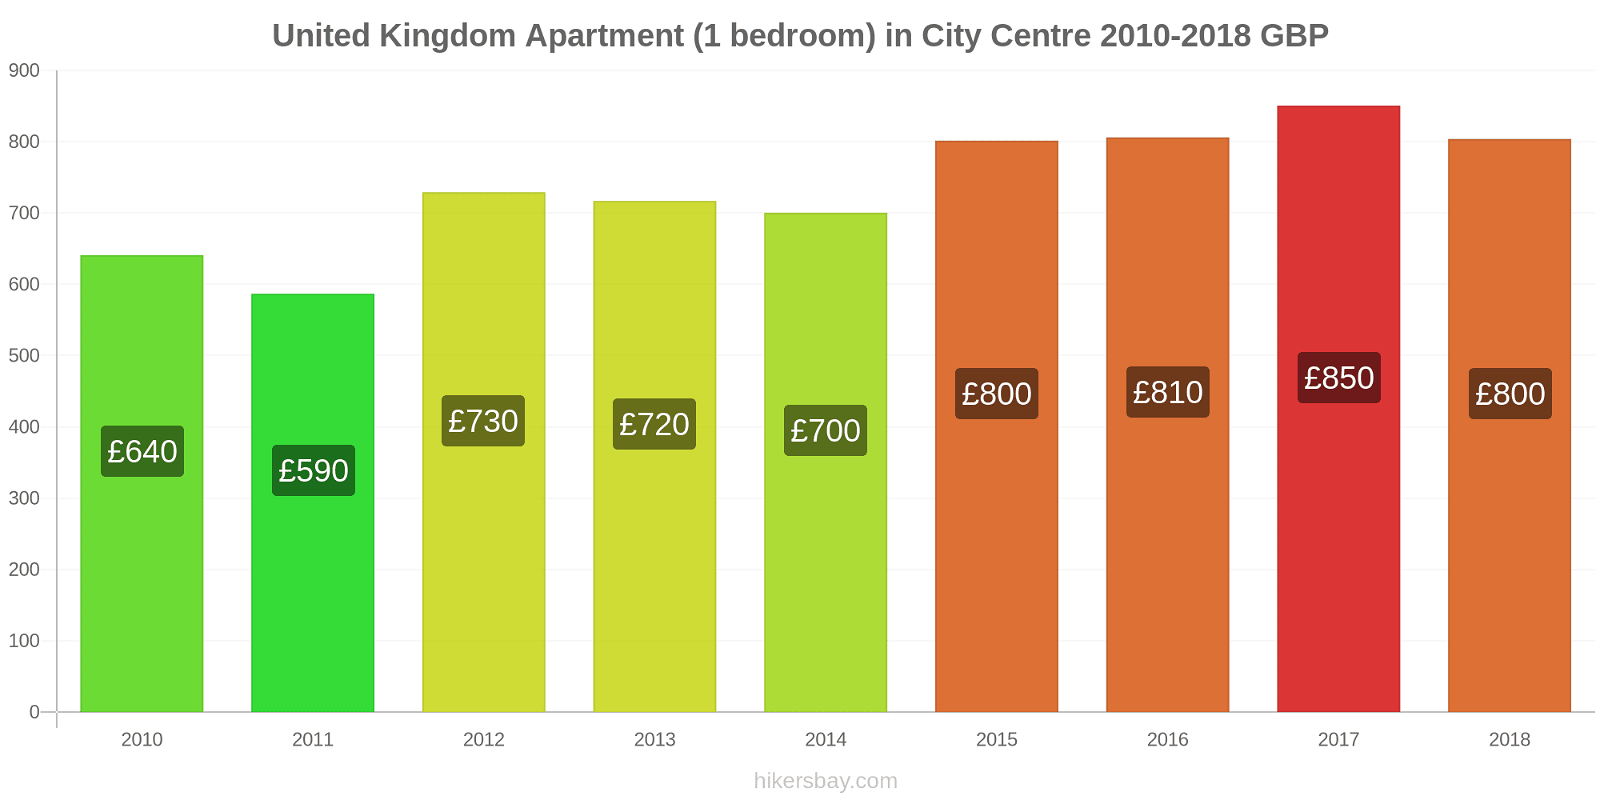 United Kingdom price changes Apartment (1 bedroom) in City Centre hikersbay.com